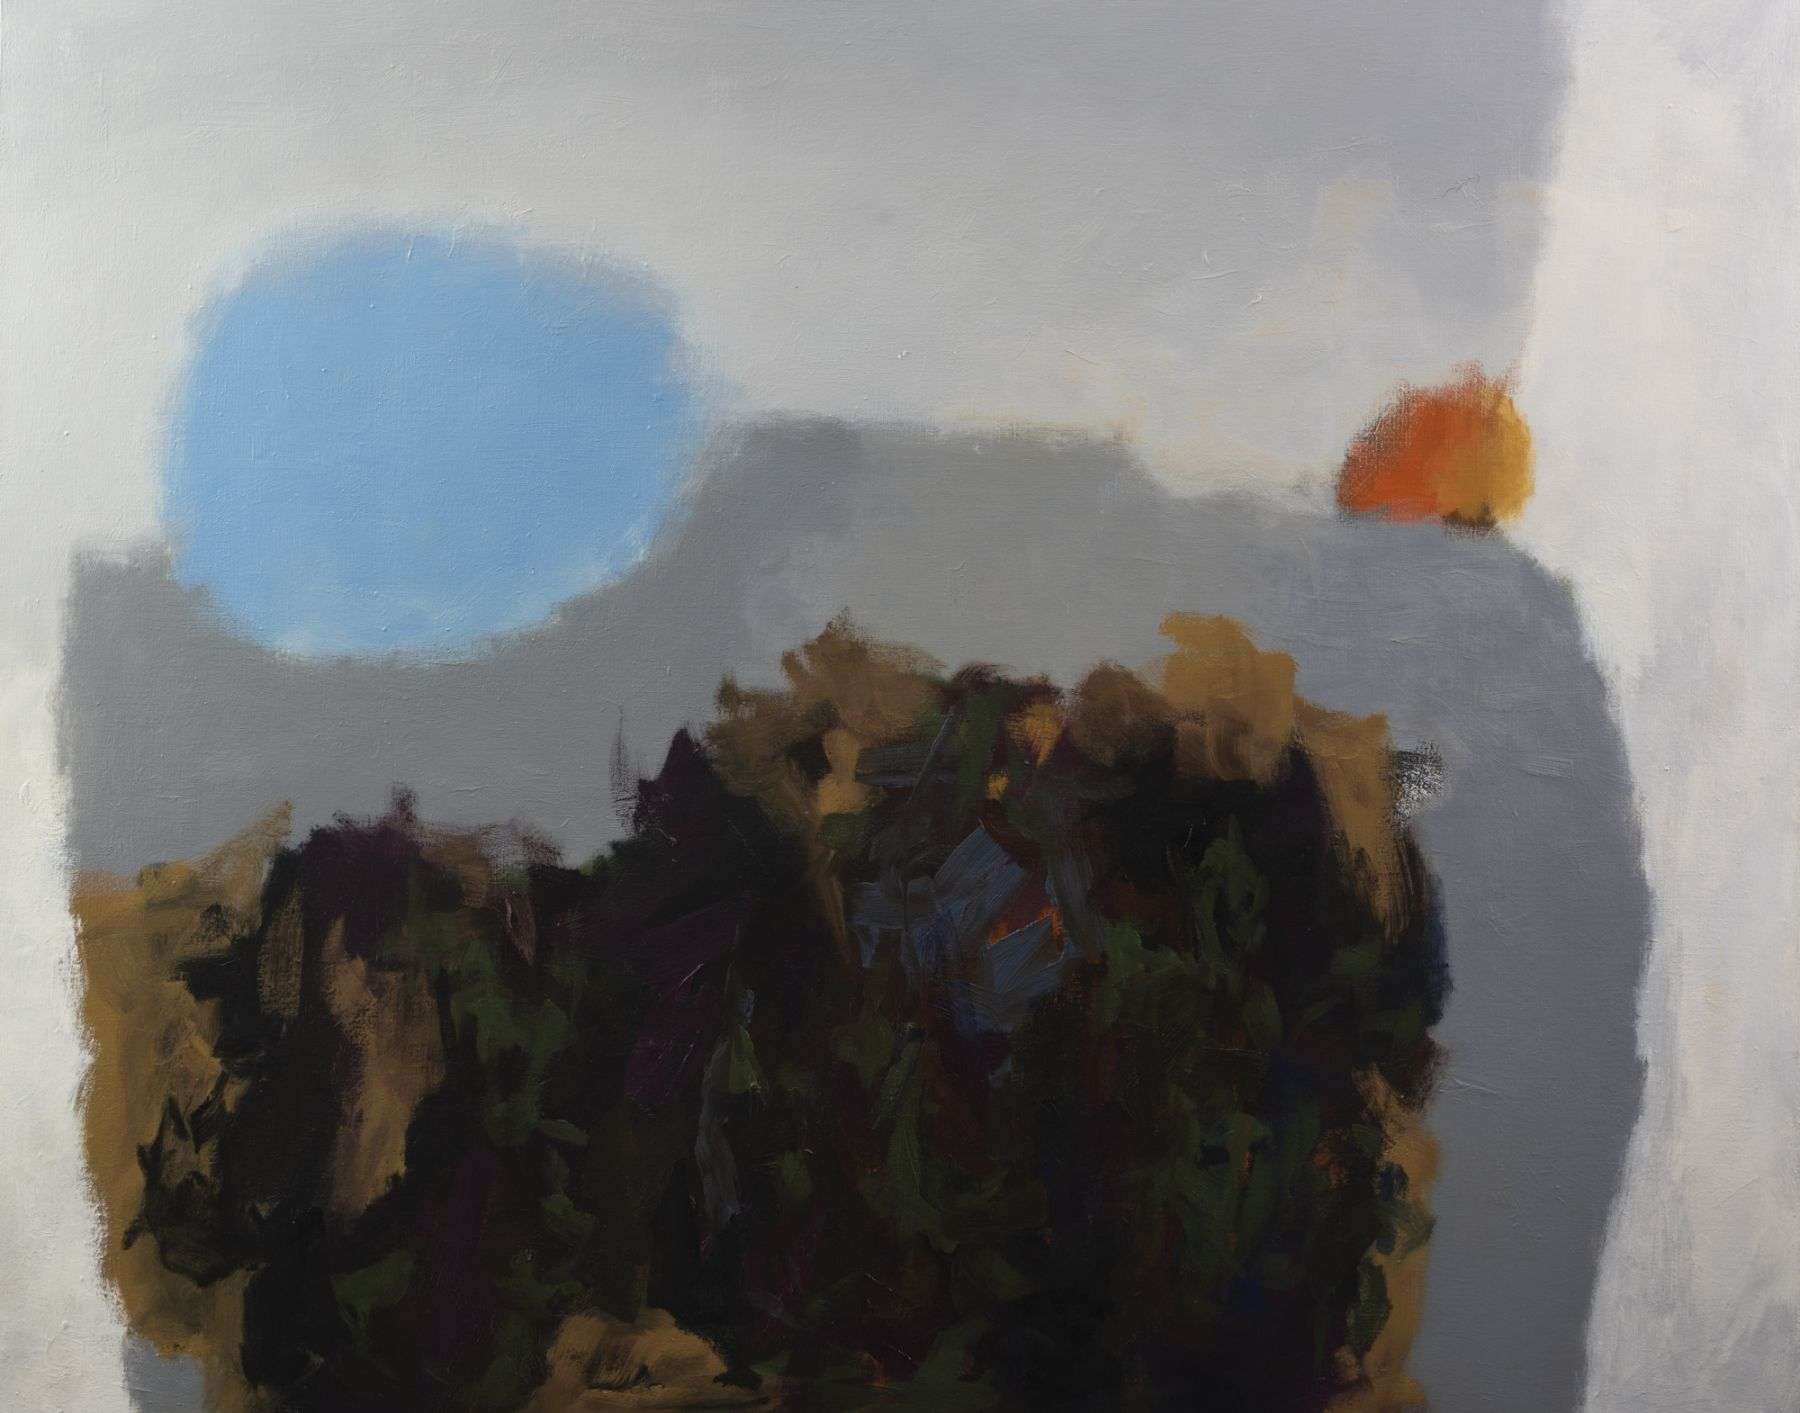 Felrath Hines, Dream Landscape, 1962, Oil on canvas, 45 x 60 inches. Abstract painting with soft grey background, blue and orange spheres and painterly strokes of black, tan and dark green.His figurative and cubist-style artwork morphed into soft-edged organic abstracts as he grappled with hues in his chosen oil medium.